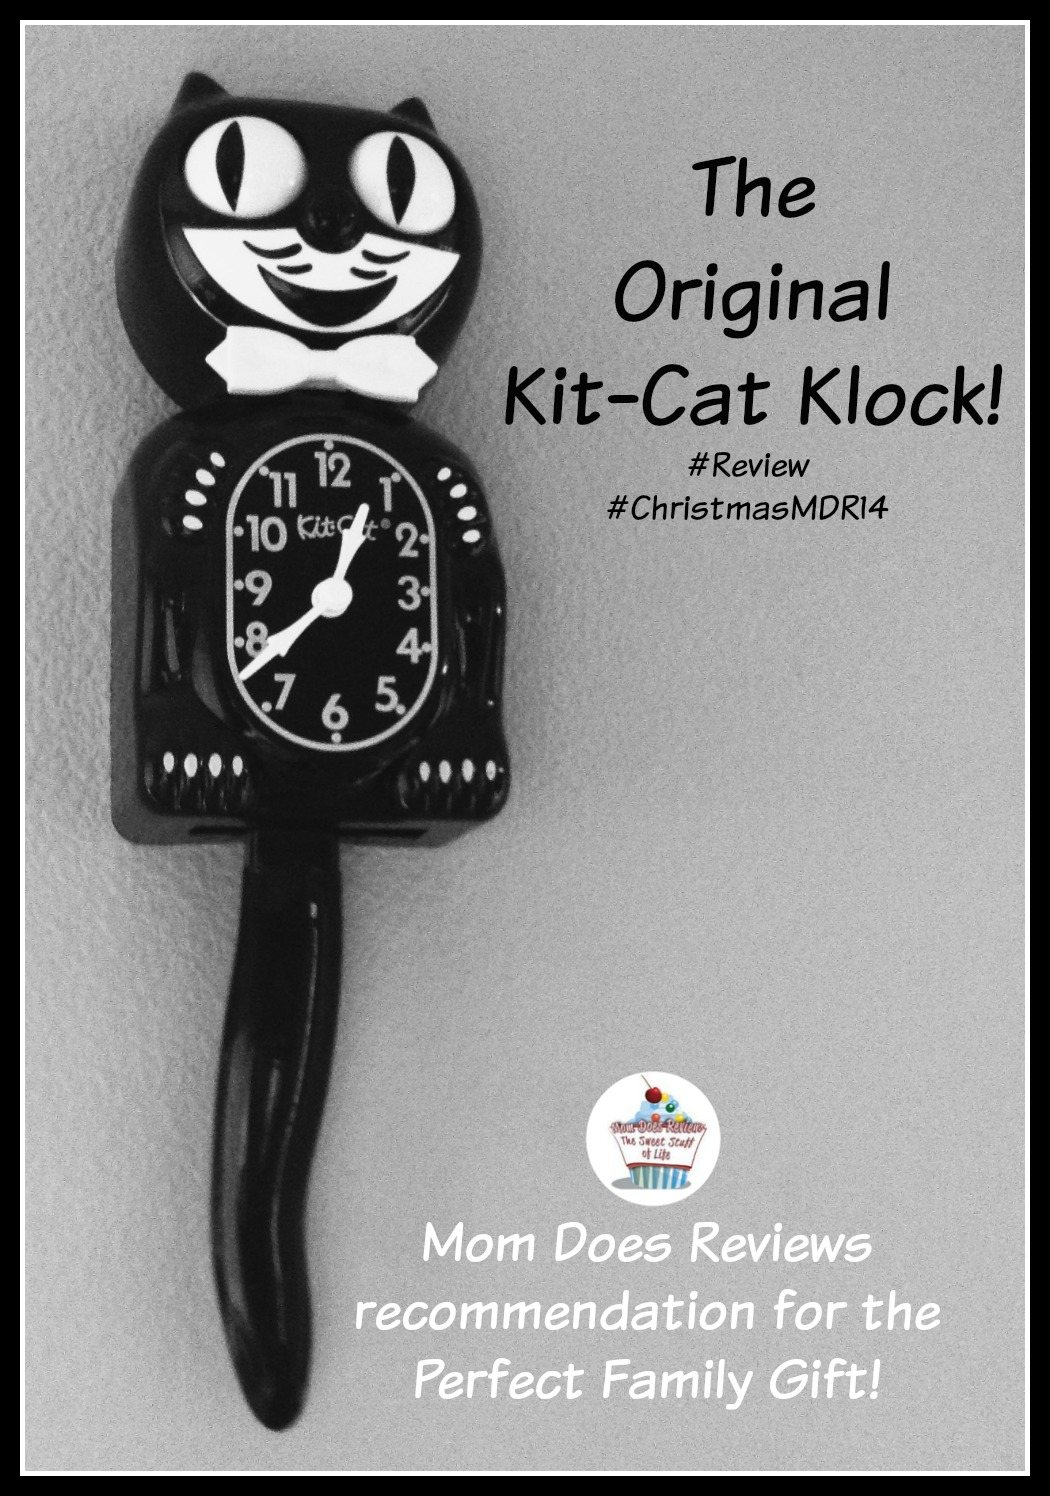 Kit cat clock review at mom does reviews the original kit cat klock mom does reviews holiday gift guide review perfect gift amipublicfo Gallery